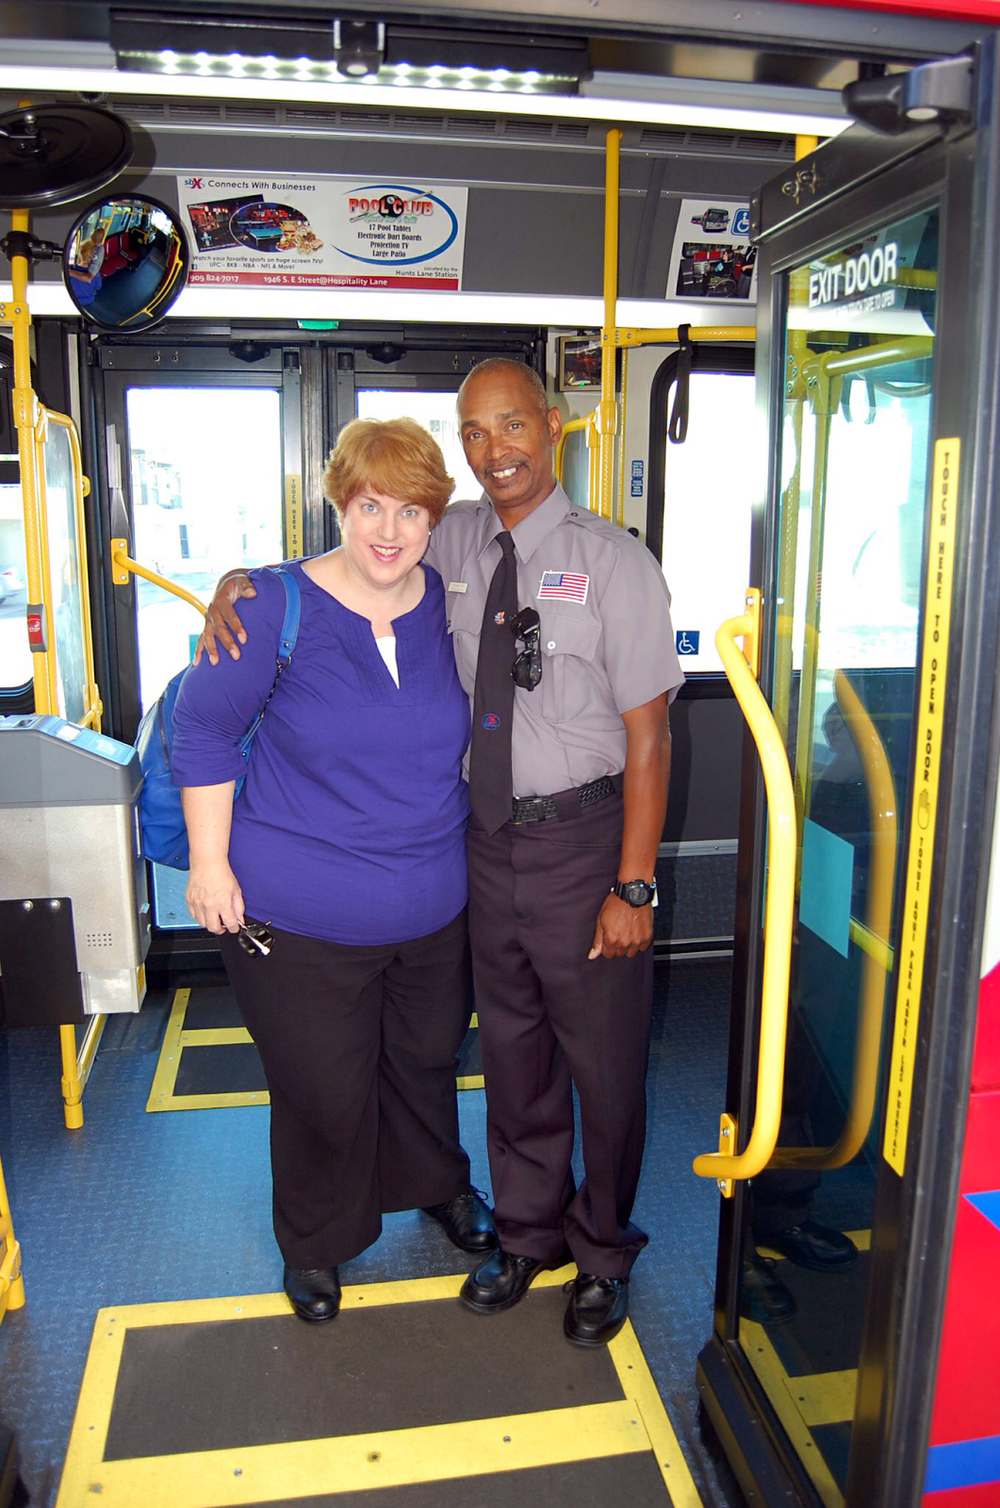 Picture of Connie with bus driver standing on bus exit ramp